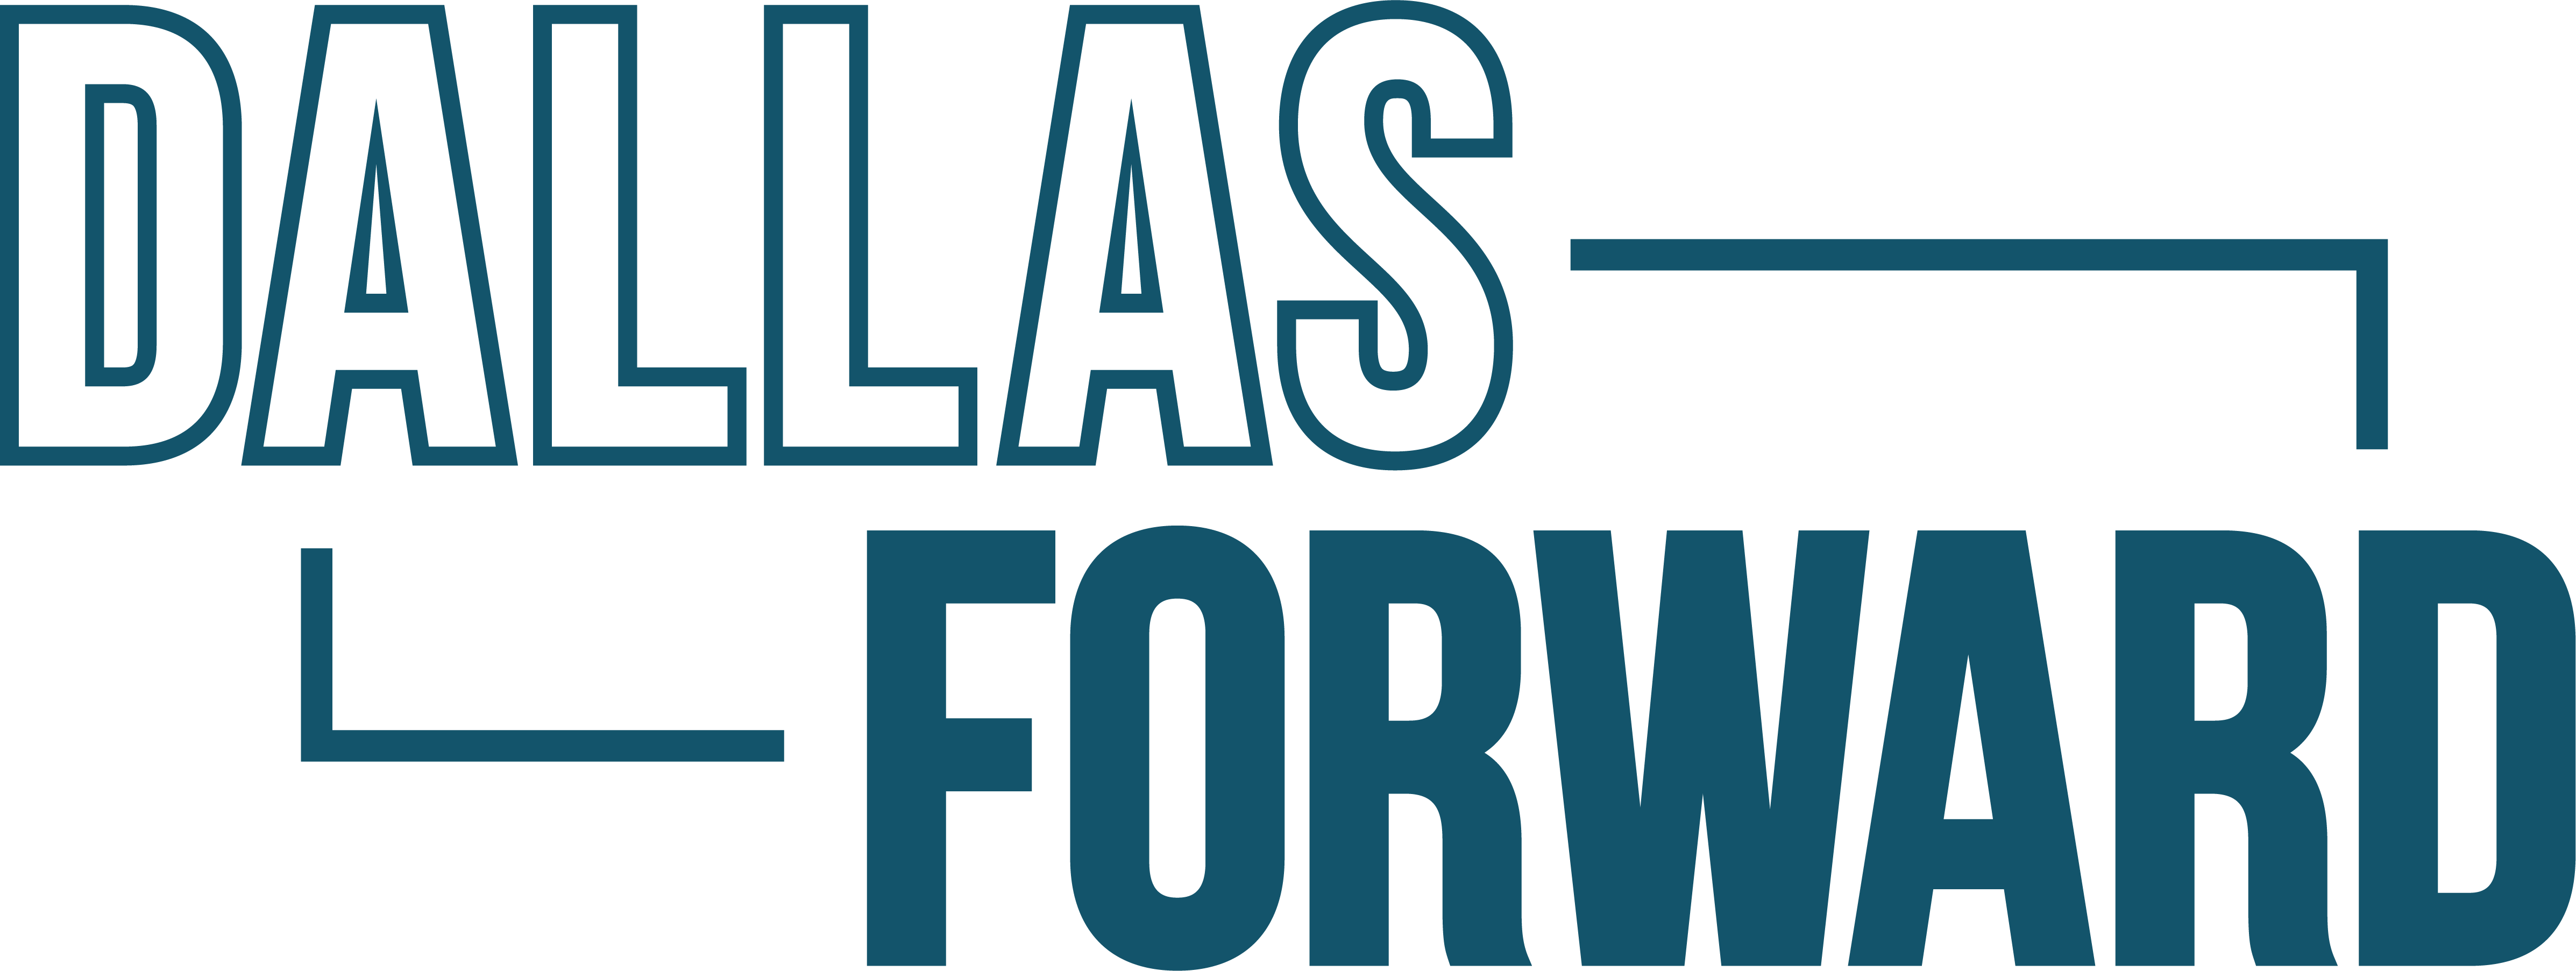 dallas forward logo